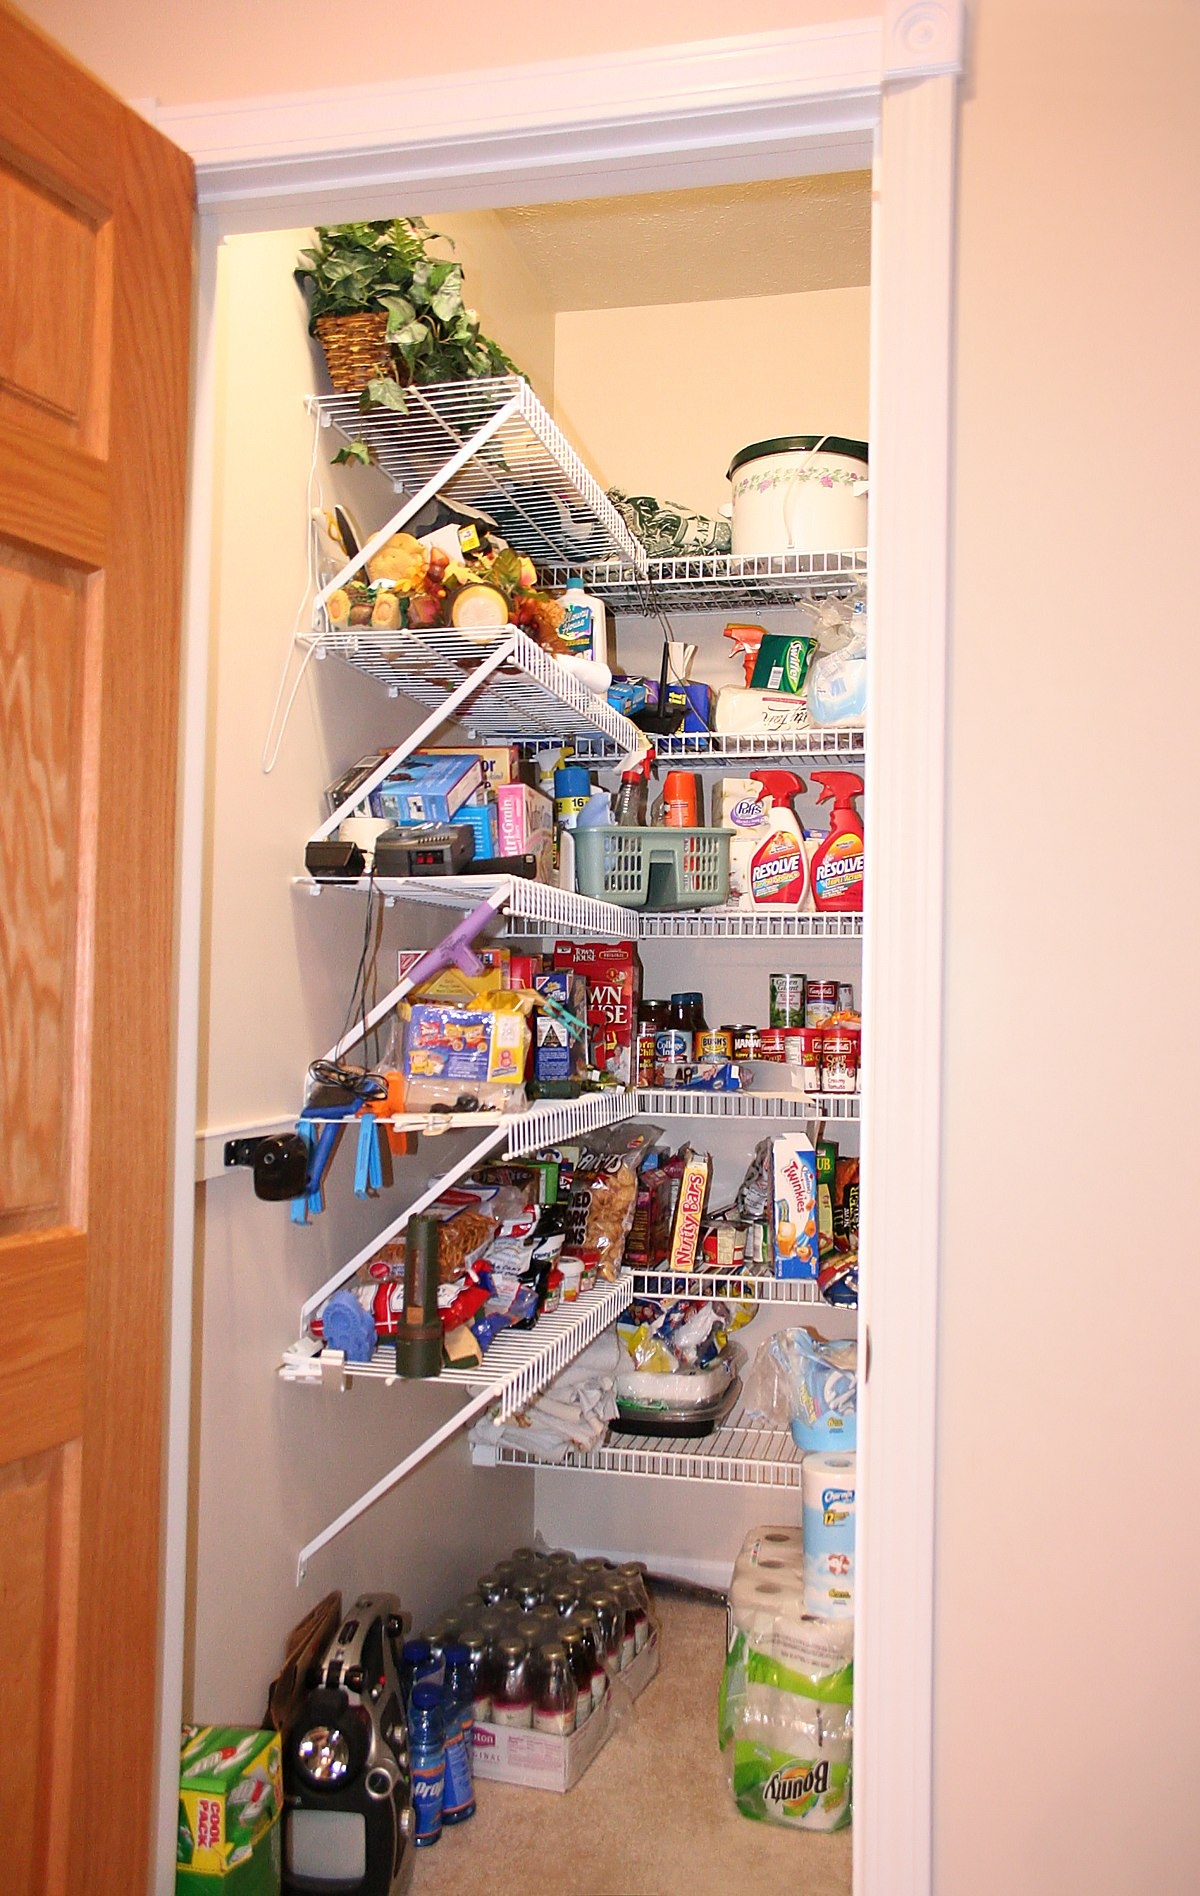 pantries az adjustable custom shelving slider pantry arizona phoenix pantrys storage with cabinets baskets scottsdale